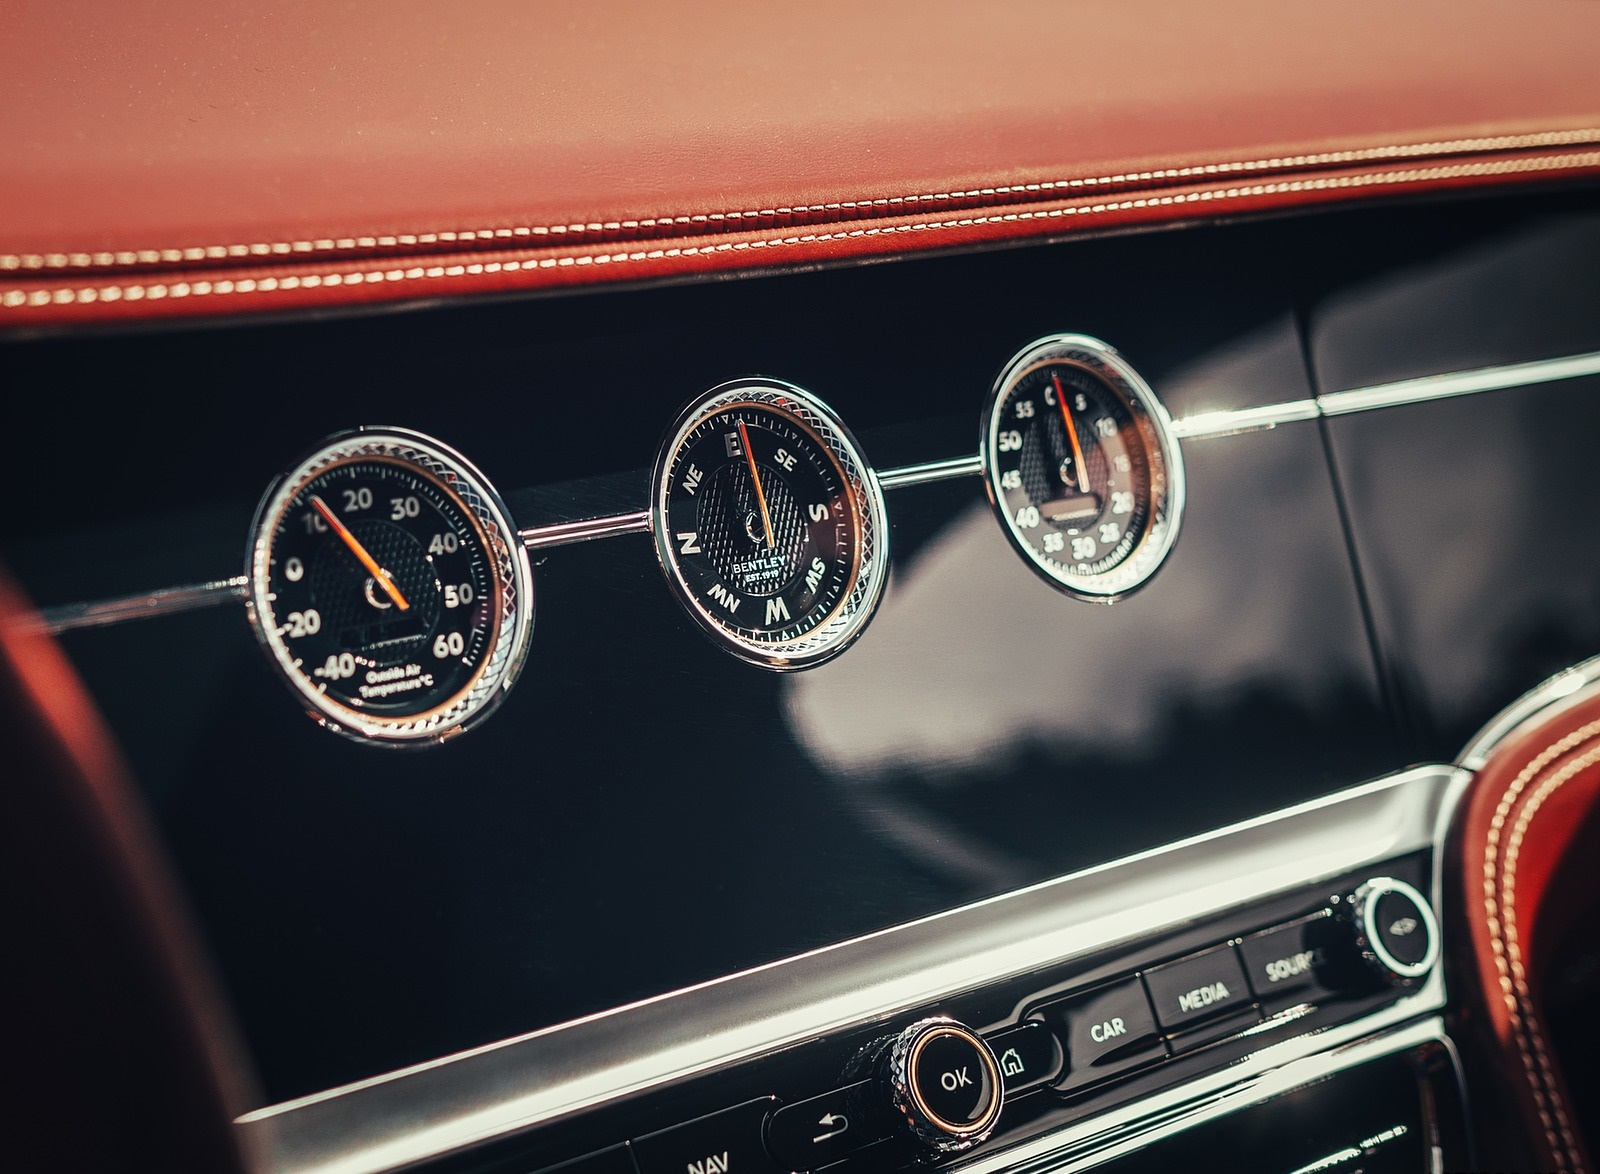 2020-Bentley-Flying-Spur-Color-Extreme-Silver-Interior-Detail-Wallpaper-6.jpg